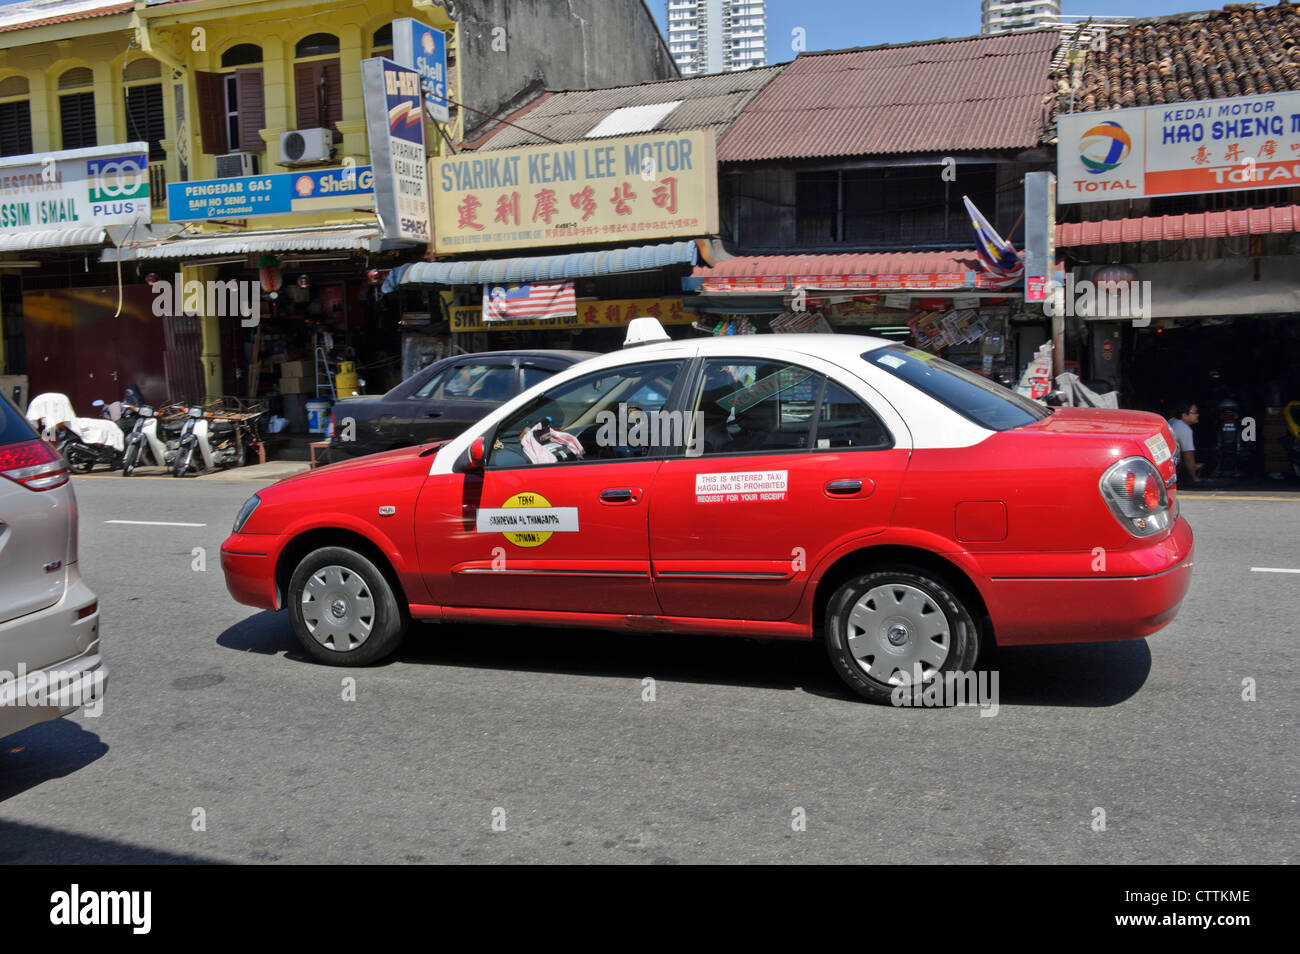 Red Taxi, Georgetown, Penang, Malaysia. - Stock Image